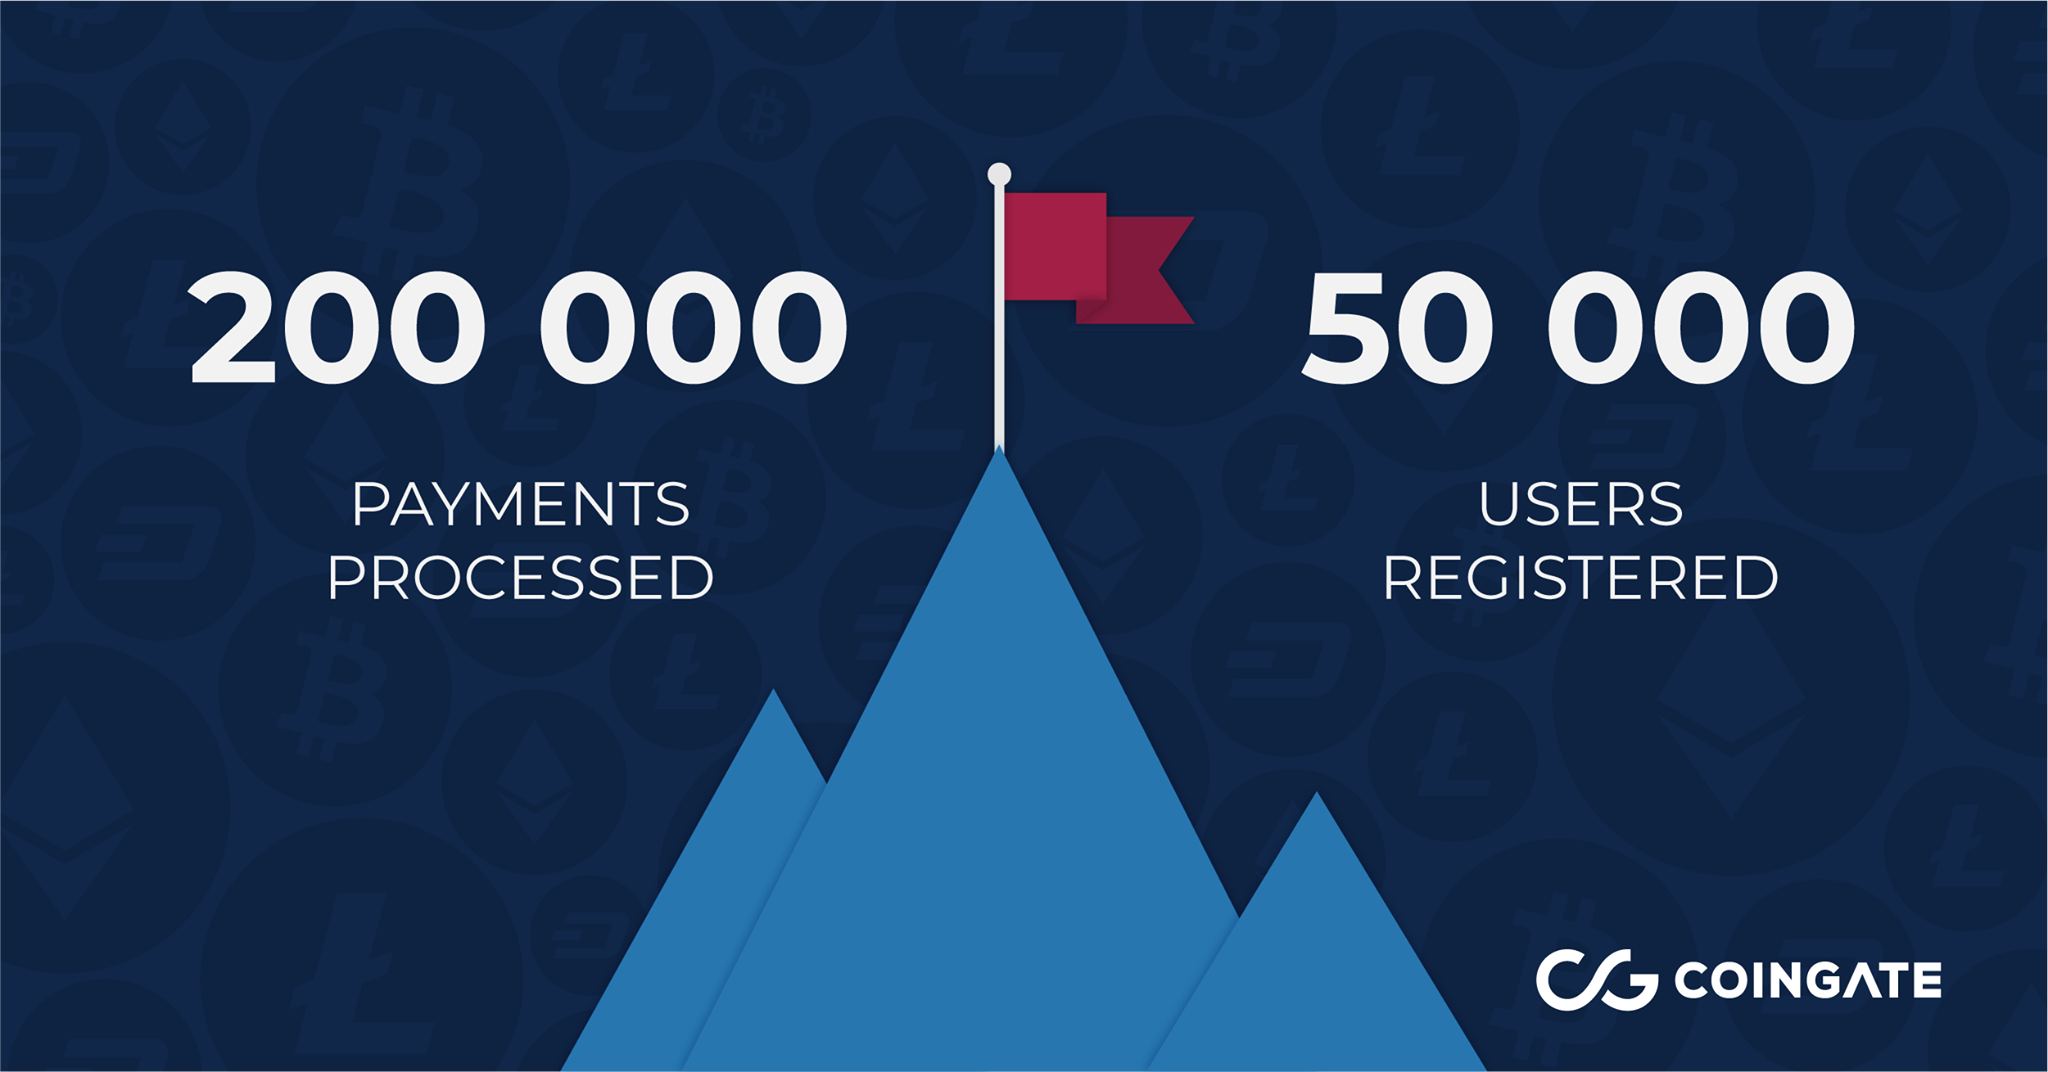 CoinGate milestones in 2018 - 200,000 payments processed